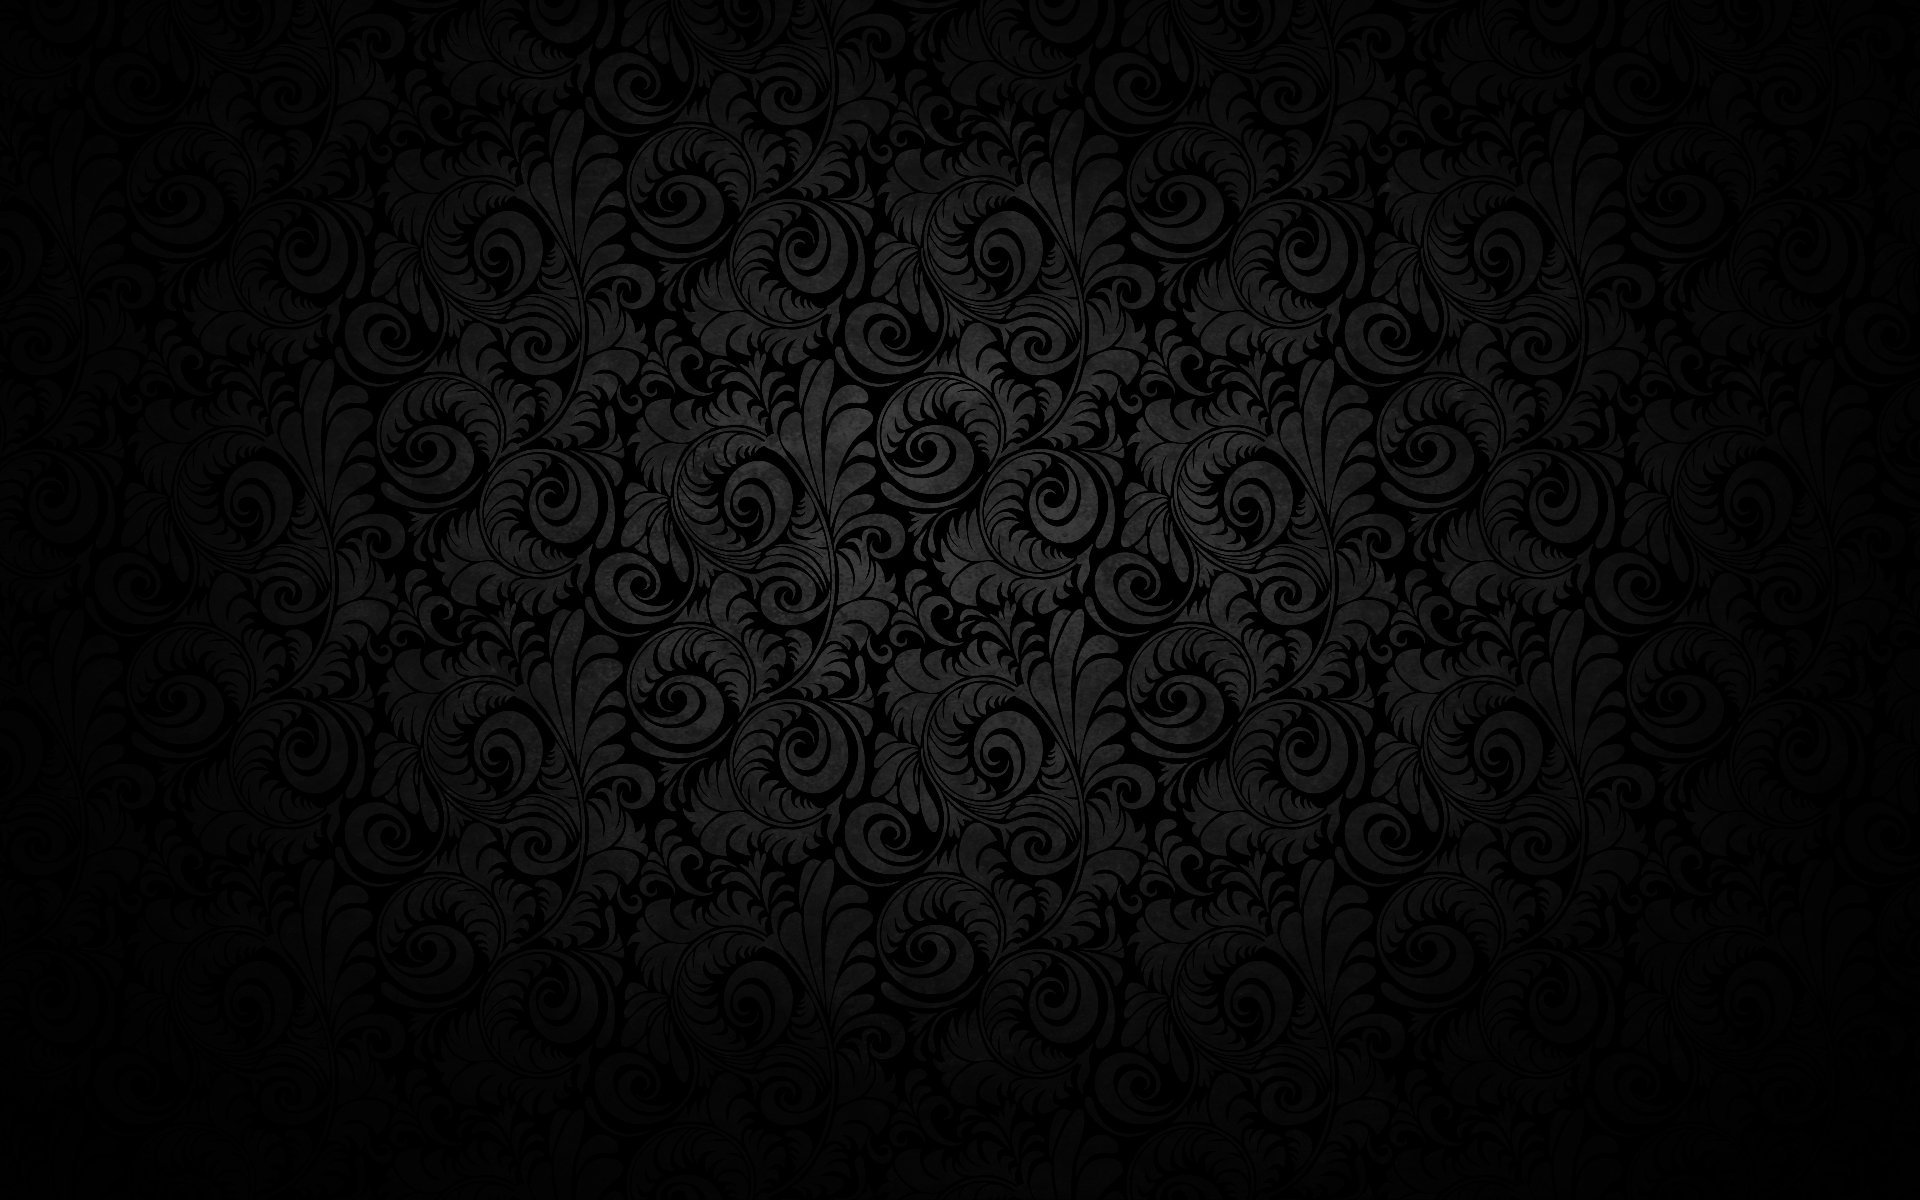 Background Cool Black Full HD desktop wallpaper Wallinda 1920x1200